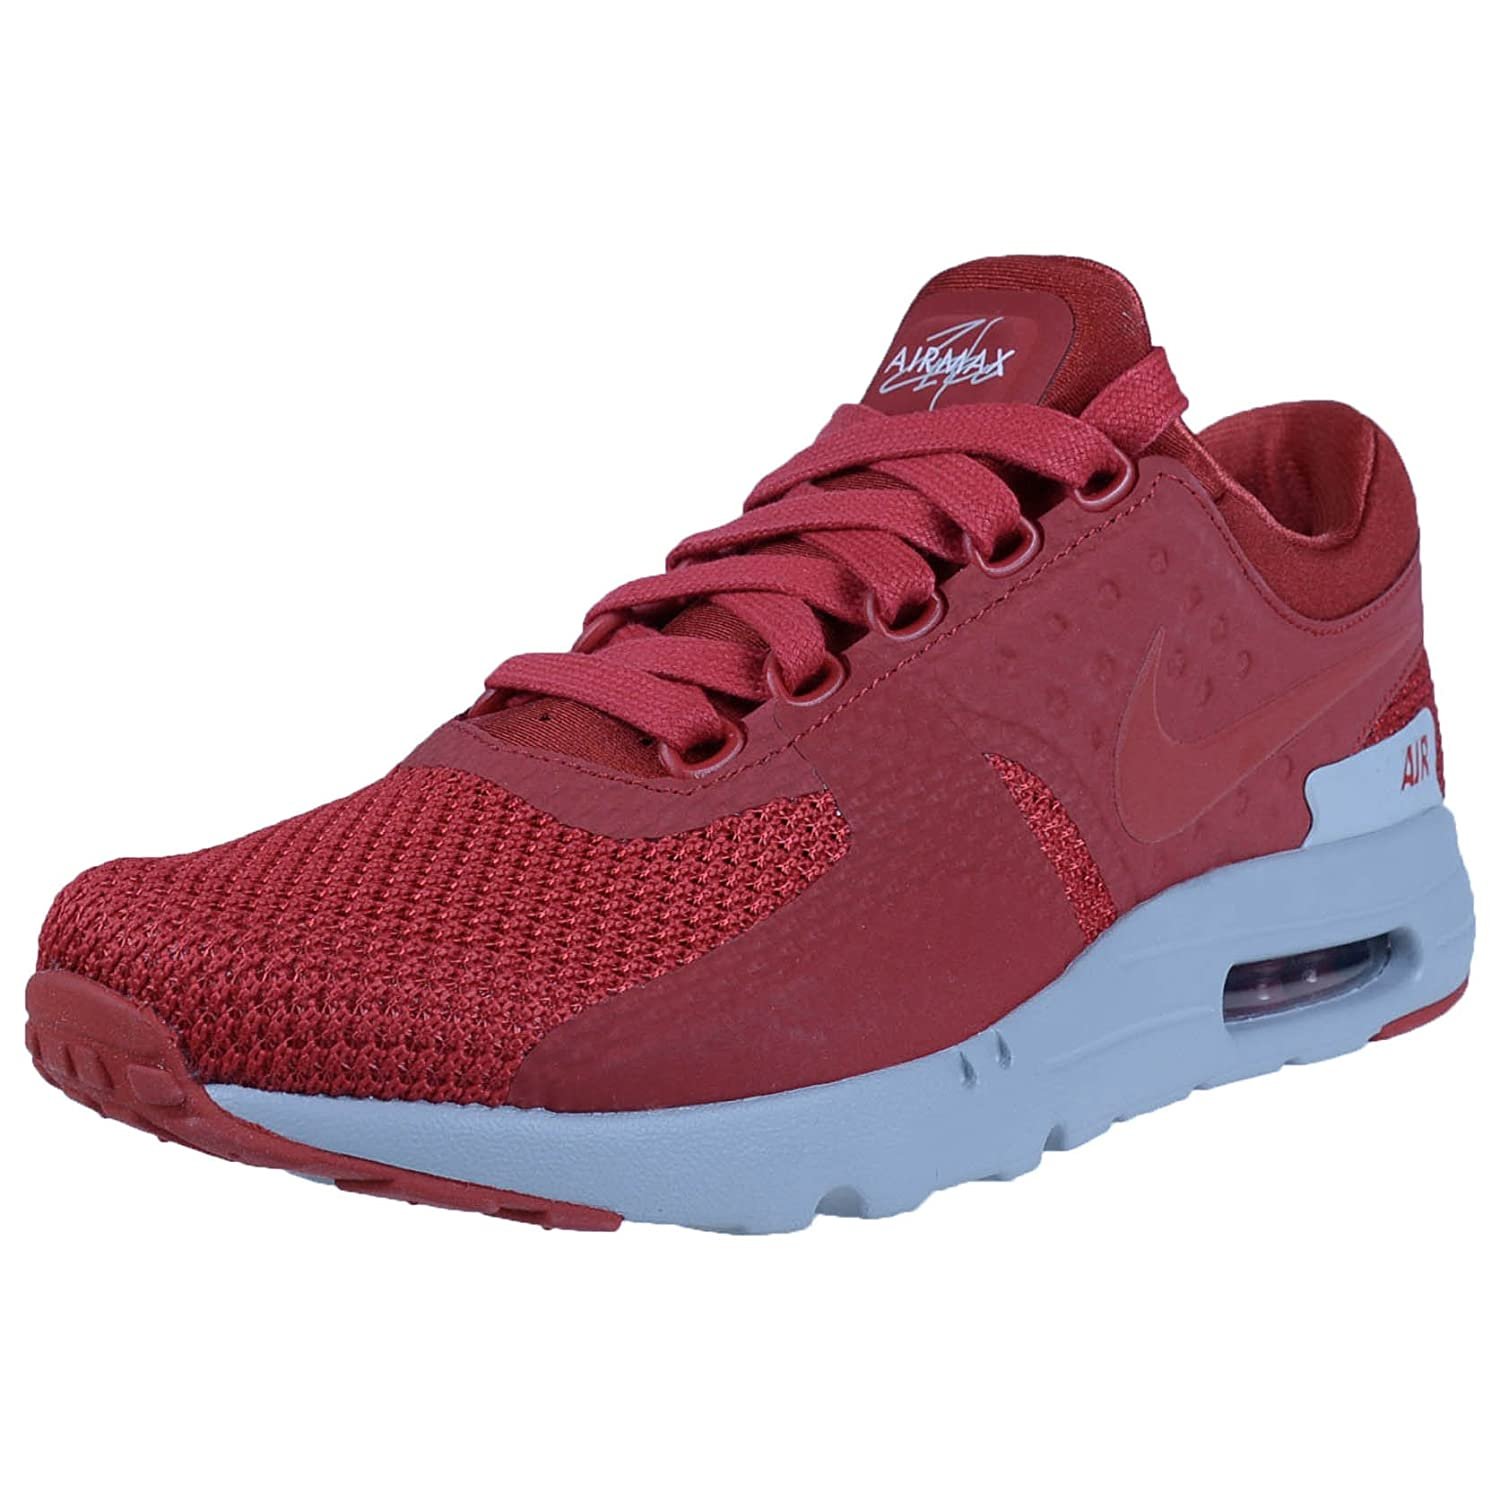 NIKE Air Max Zero Essential Mens Running Shoes B003GQV7AM 9.5 D(M) US|Red